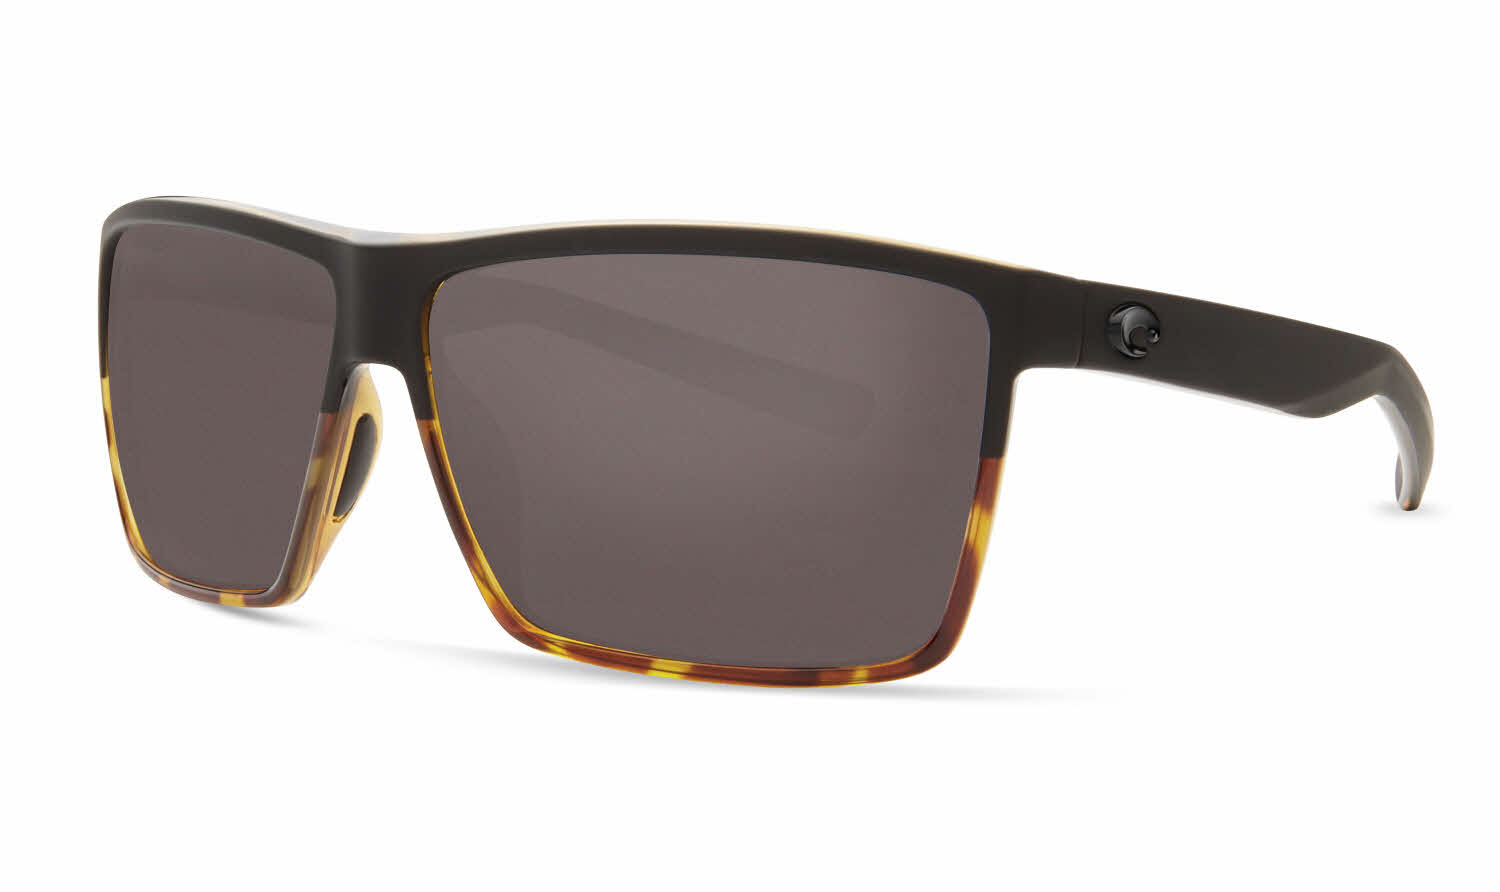 268ebeff4bb83 Costa® Sunglasses